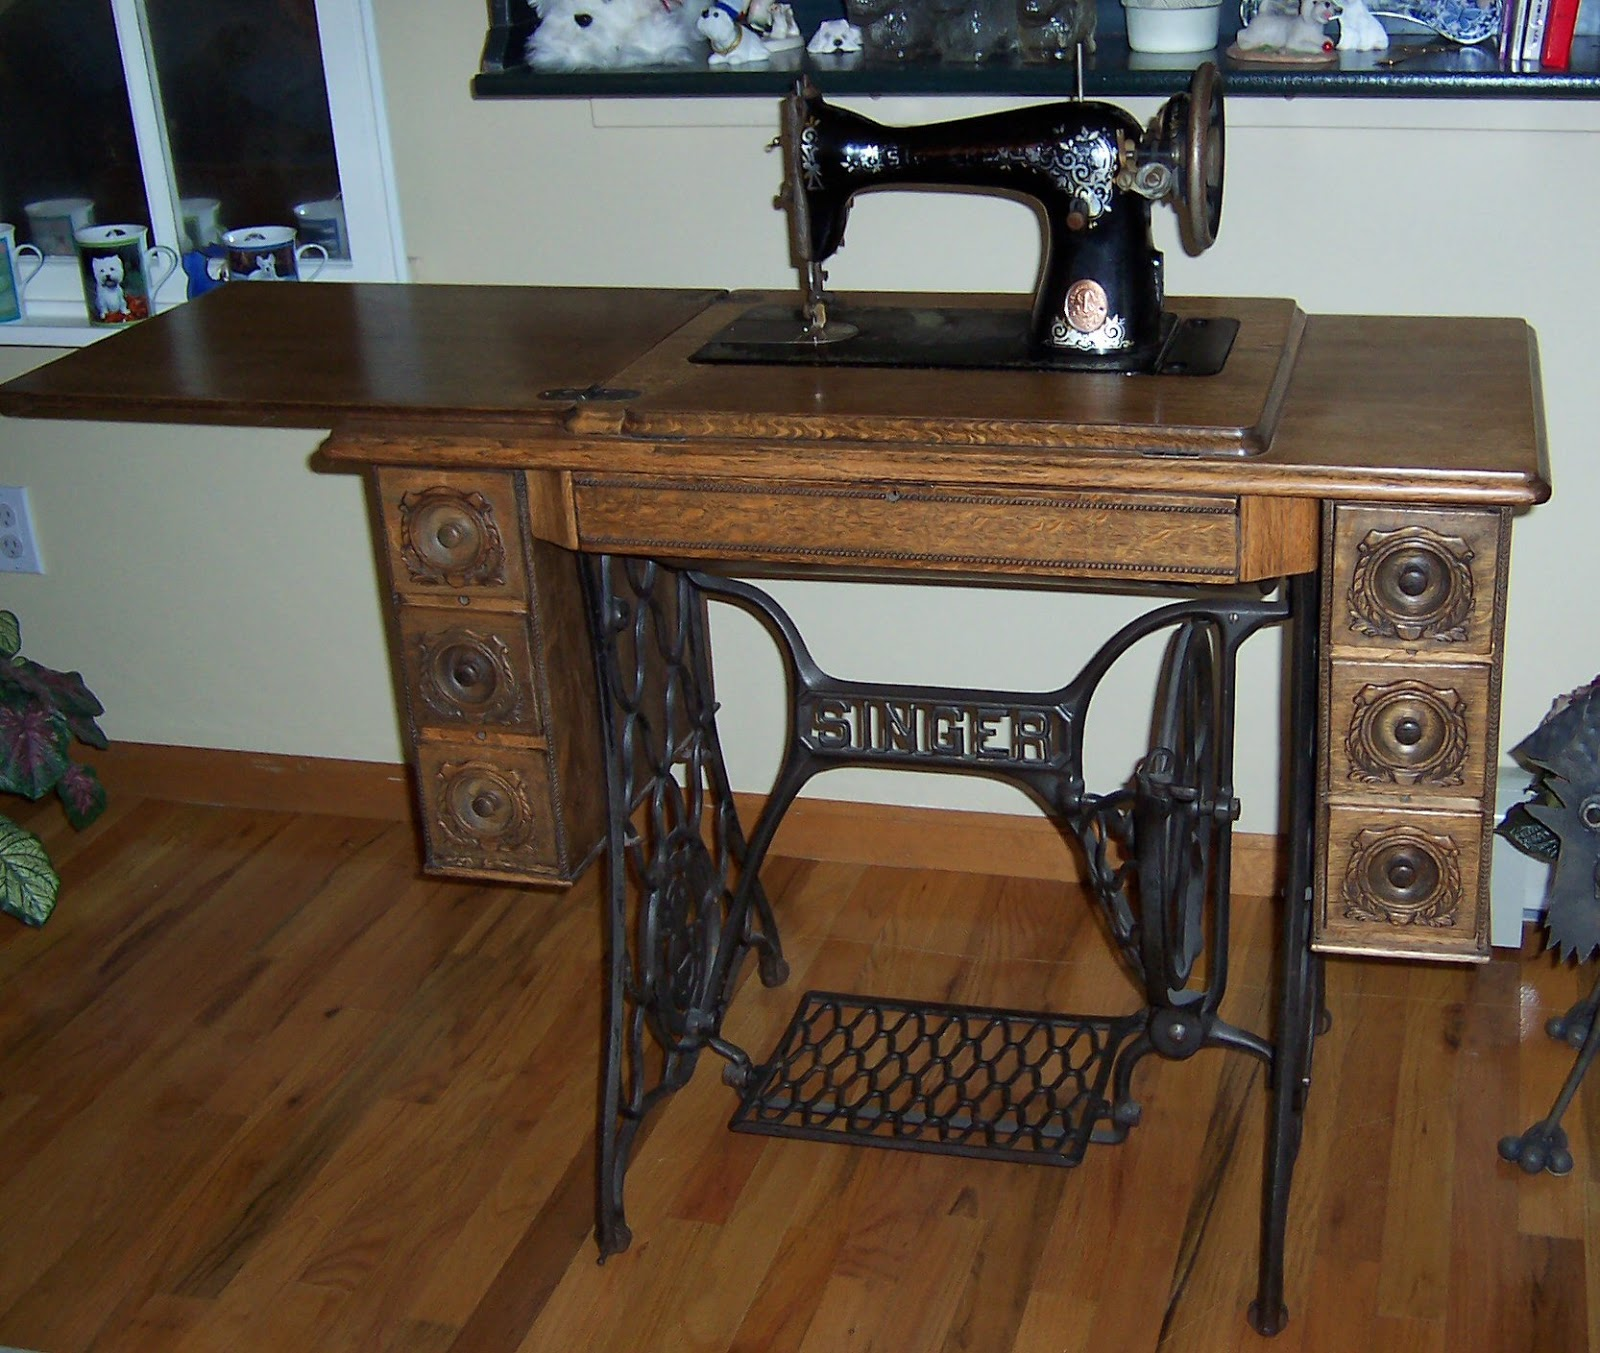 Antique Singer Sewing Machine - Model No. 15